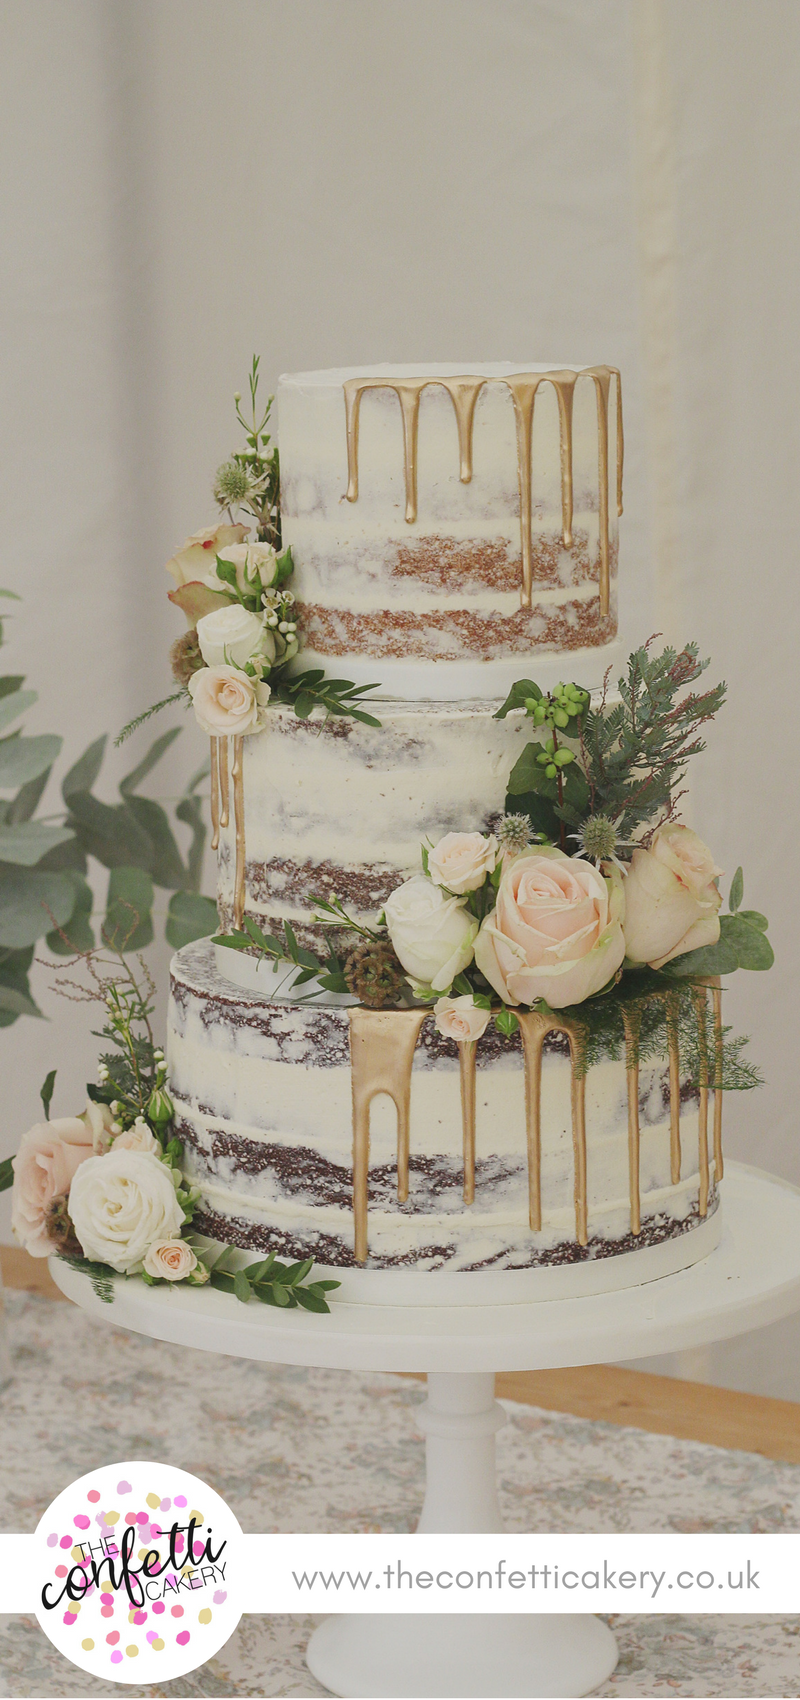 Semi-naked wedding cake with gold drips and fresh flower and foliage decoration….